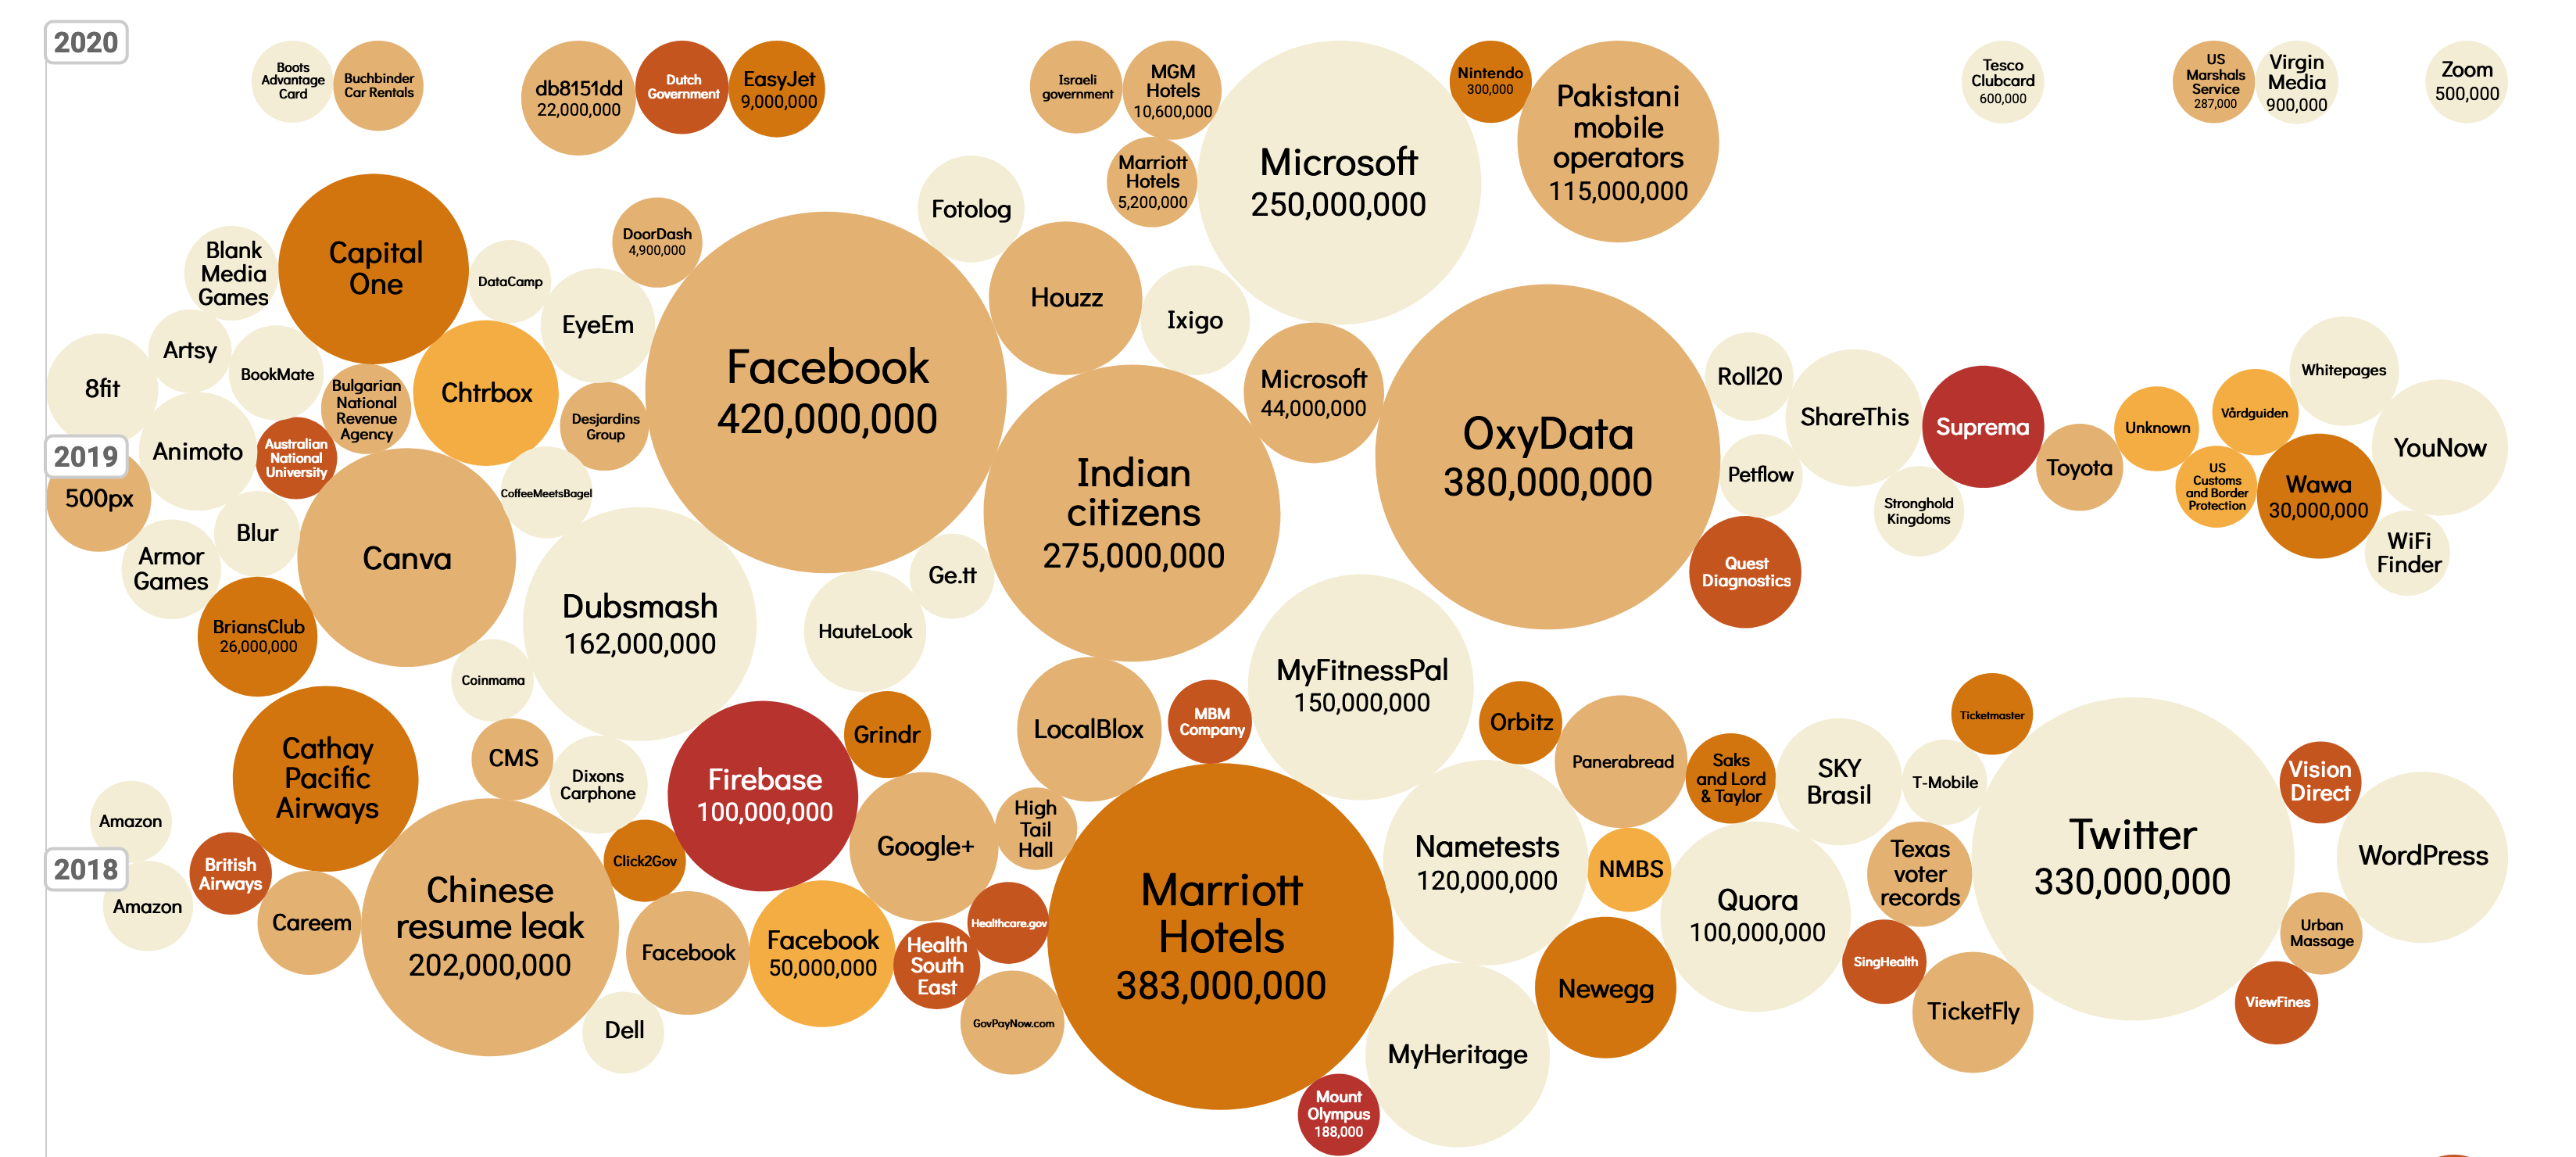 A bubble chart depicting security breaches. Some bubbles contain the number affected. A vertical axis ranges from 2018 to 2020 in increments of 1. All data are approximate. From largest to smallest the data is as follows. Facebook 420,000,000 2019, Marriott Hotels 383,000,000 2018, OxyData 380,000,000 2019, Twitter 330,000,000 2018, Indian citizens 275,000,000 2019, Microsoft 250,000,000 2020, Chinese Resume leak 202,000,000 2018, Pakistani mobile operators 115,000,000 2020, Dubsmash 162,000,000 2019, MyFitnessPal 150,000,000 2018, Canva 2019, Nametests 120,000,000 2018, Quora 100,000,000 2018, Firebase 100,000,000 2018, Cathay Pacific Airways 2018, Capital One 2019, WordPress 2018, MyHeritage 2018, Careem 2018, Facebook 2018, Google+ 2018, LocalBlox 2018, Newegg 2018, Panerabread 2018, SKY Brasil 2018, TicketFly 2018, Animoto 2019, 8fit 2019, 500 px 2019 , Facebook 50,000,000 2018, Microsoft 44,000,000 2019, Wawa 30,000,000 2019, BriansClub 26,000,000 2019, db8151dd 22,000,000 2020, MGM Hotels 10,600,000 2020, EasyJet 9,000,000 2020, Marriott Hotels 5,200,000 2020, Chtrbox 2019, Black Media Games 2019, HauteLook 2019, EyeEm 2019, Fotolog 2019, Houzz 2019, Ixigo 2019, ShareThis 2019, Suprema 2019, Whitepages 2019, YouNow 2019, Amazon 2018, Amazon 2018, British Airways 2018, CMS 2018, Dixons Carphone 2018, Click2Gov 2018, Dell 2018, Health South East 2018, Grindr 2018, Healtcare.gov 2018, High Tail Hall 2018, GovPayNow.com 2018, MBM company 2018, Orbitz 2018, NMBS 2018, Saks and Lord & Taylor 2018, T-Mobile 2018, Ticketmaster 2018, Texas Voter Records 2018, SingHealth 2018, Vision Direct 2018, Urban Massage 2018, ViewFines 2018, Artsy 2019, Amo Games 2019, Blue 2019, BookMate 2019, Australian National University 2019, Blur 2019, Bulgarian National Revenuw Agency 2019, DataCamp 2019, DoorDash 4,900,000 2019, Desjardins Group 2019, CoffeeMeetsBagel 2019, Coinmama 2019, HauteLook 2019, ge.tt 2019, Roll20 2019, Petflow 2019, Quest Diagnostics 2019, Stronghold Kingdoms 20